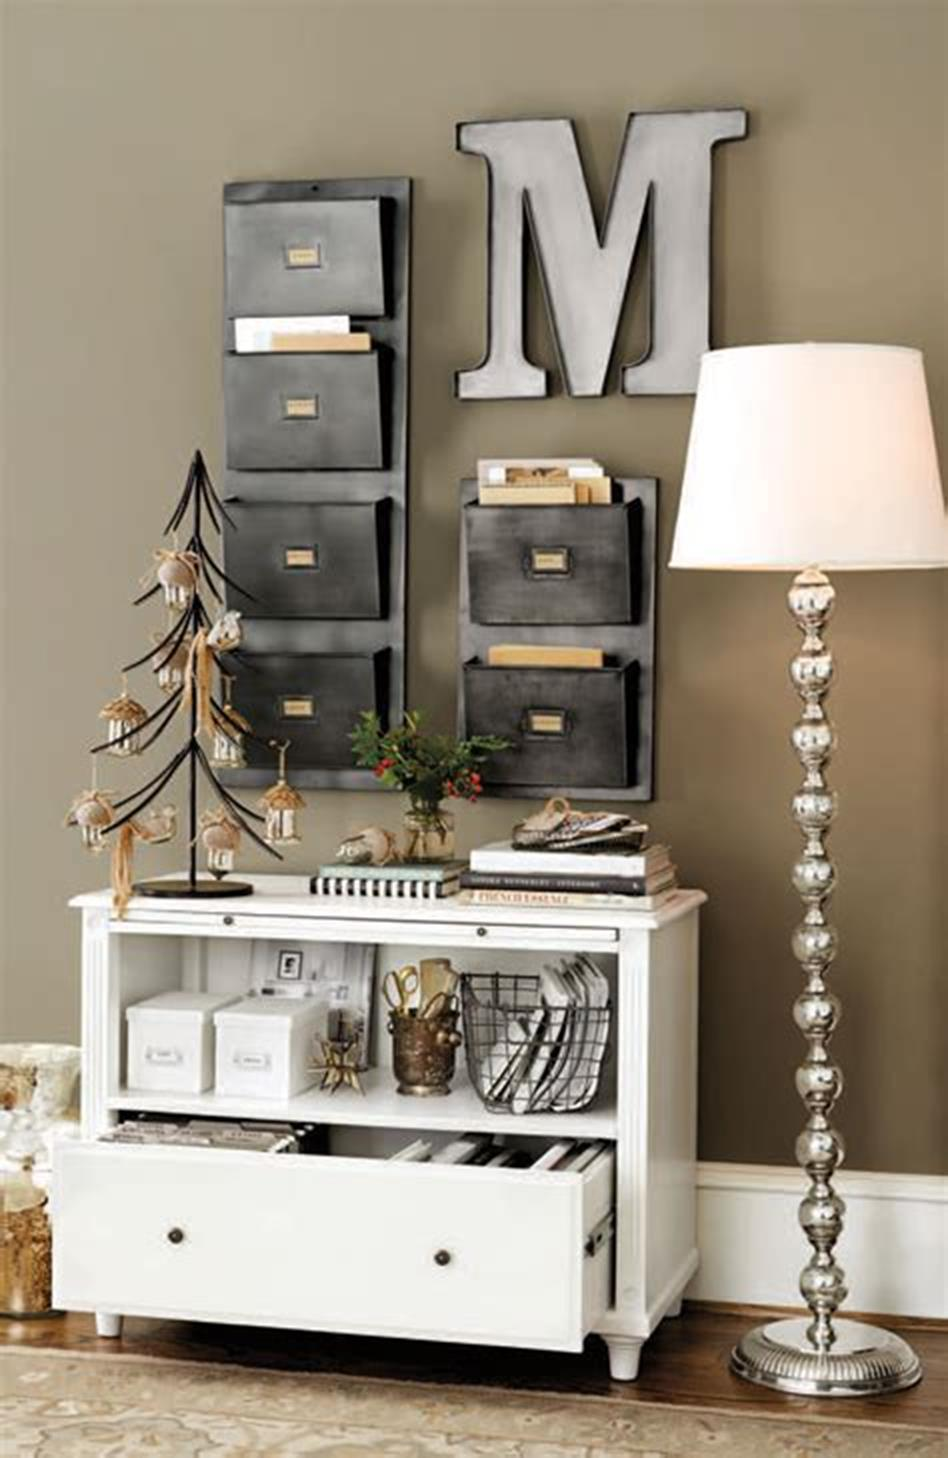 Home Design Ideas Small Spaces: 50 Best Small Space Office Decorating Ideas On A Budget